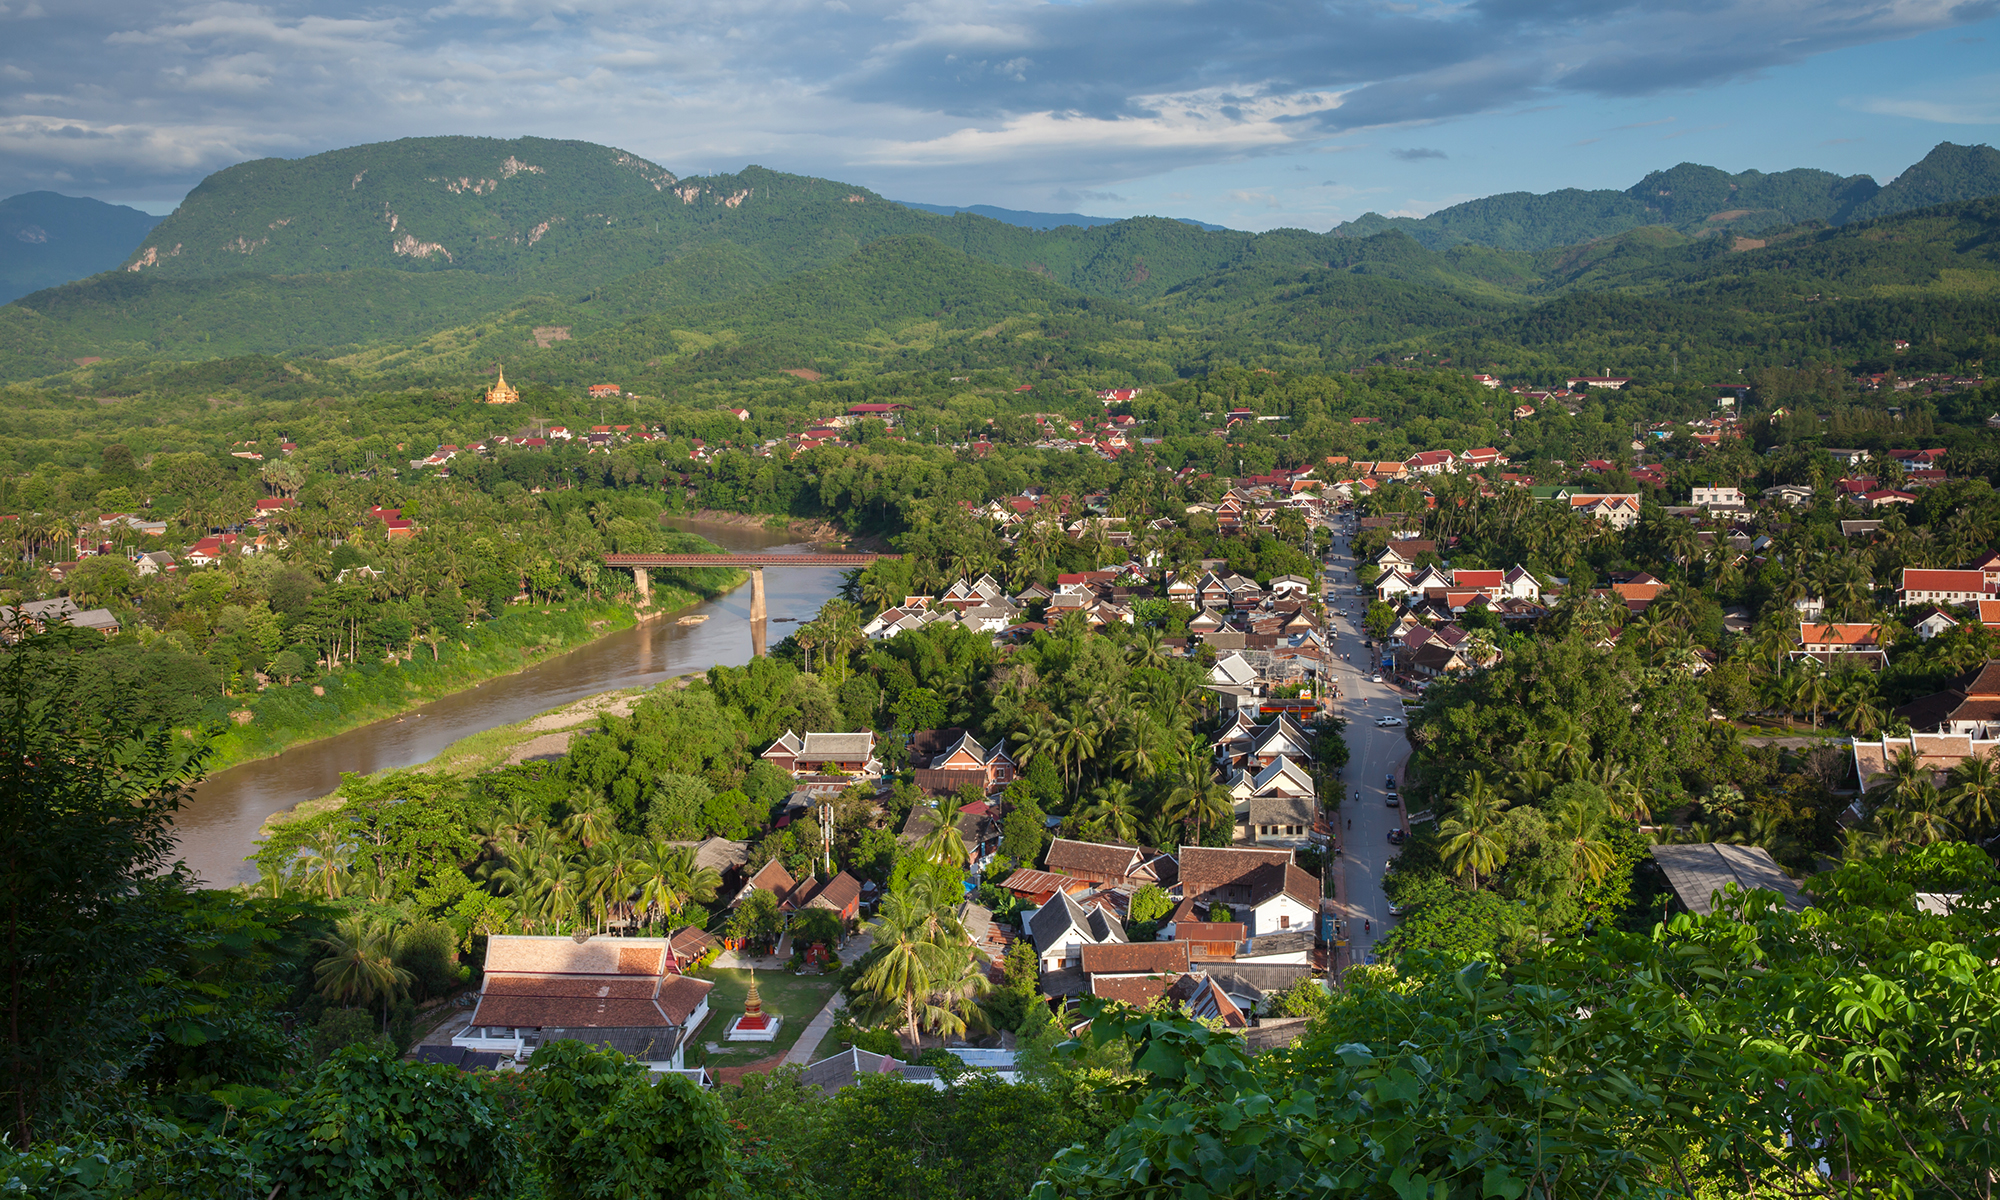 A French charm with Buddhist traditions, Luang Prabang, Laos